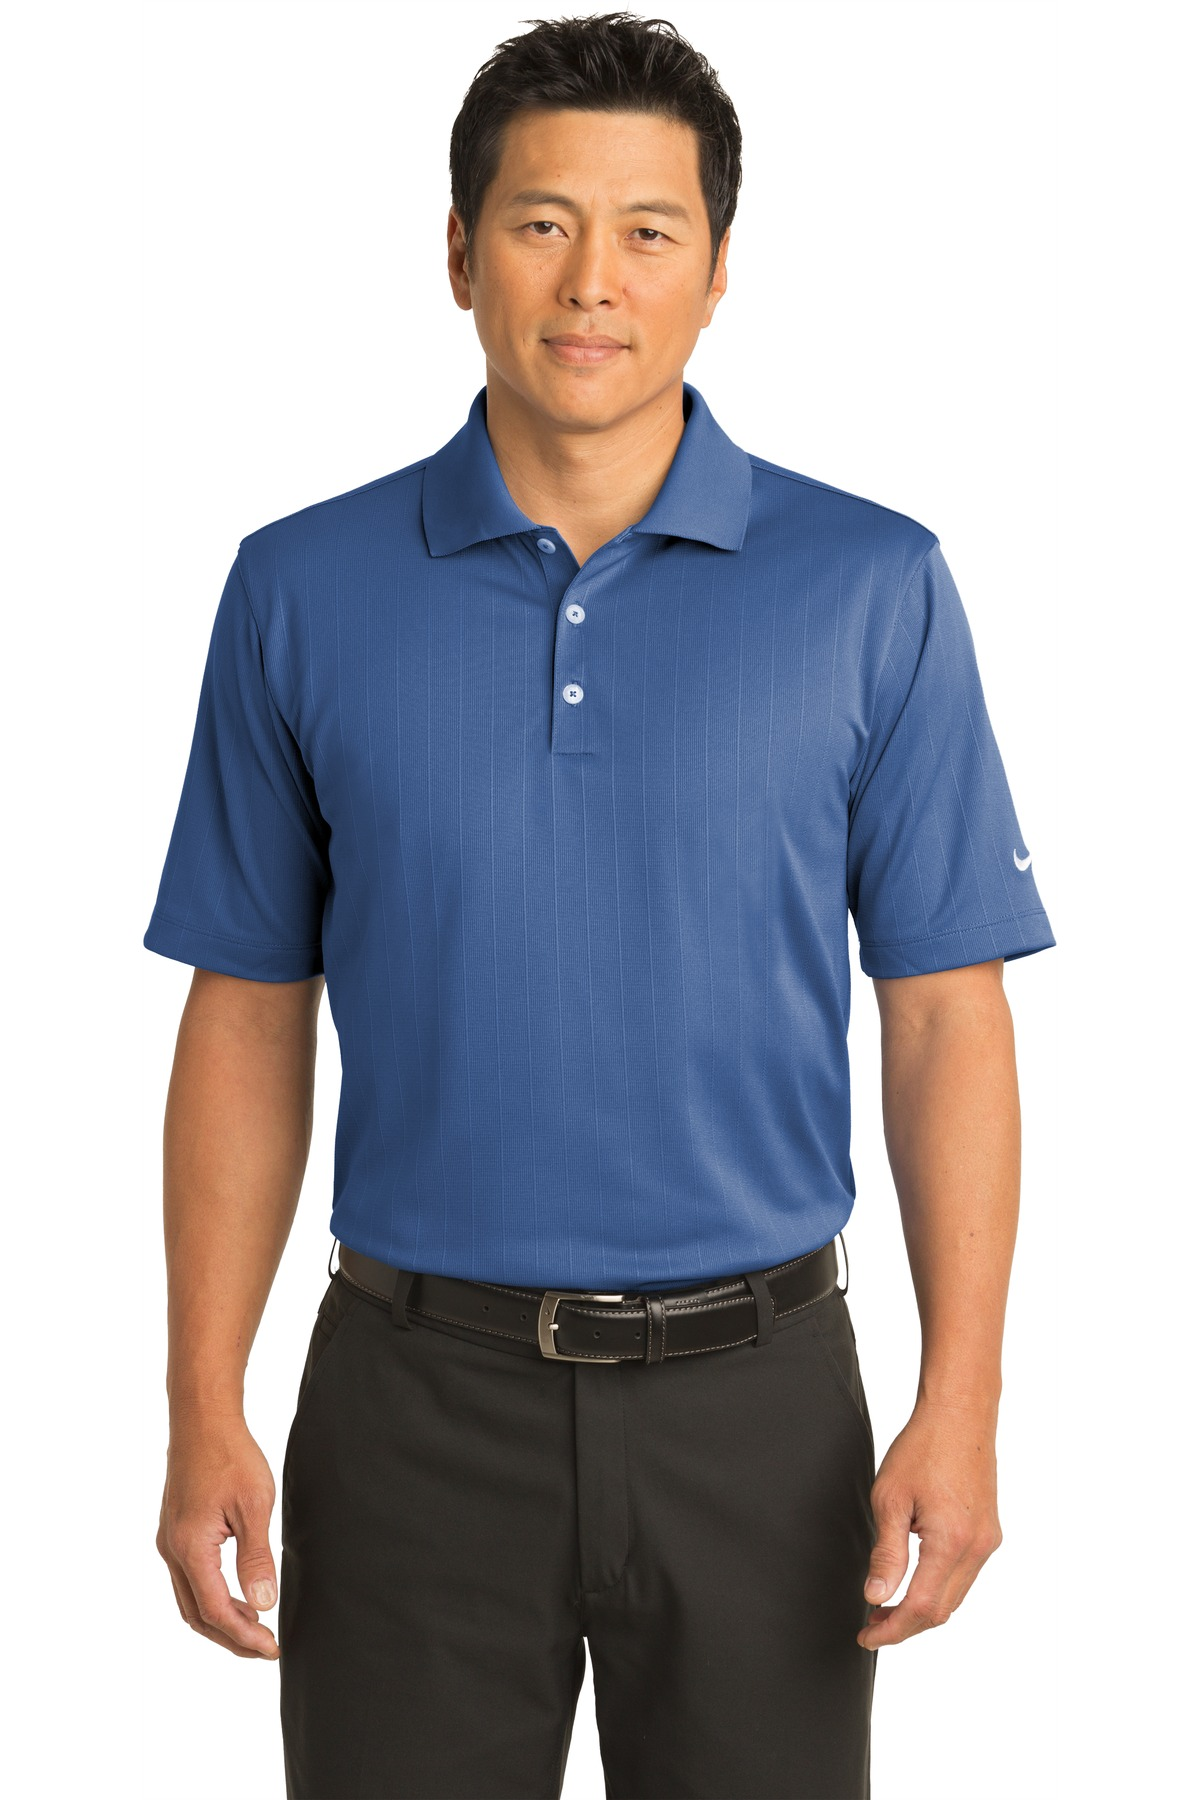 Nike Dri-FIT Textured Polo.  244620 - Mountain Blue